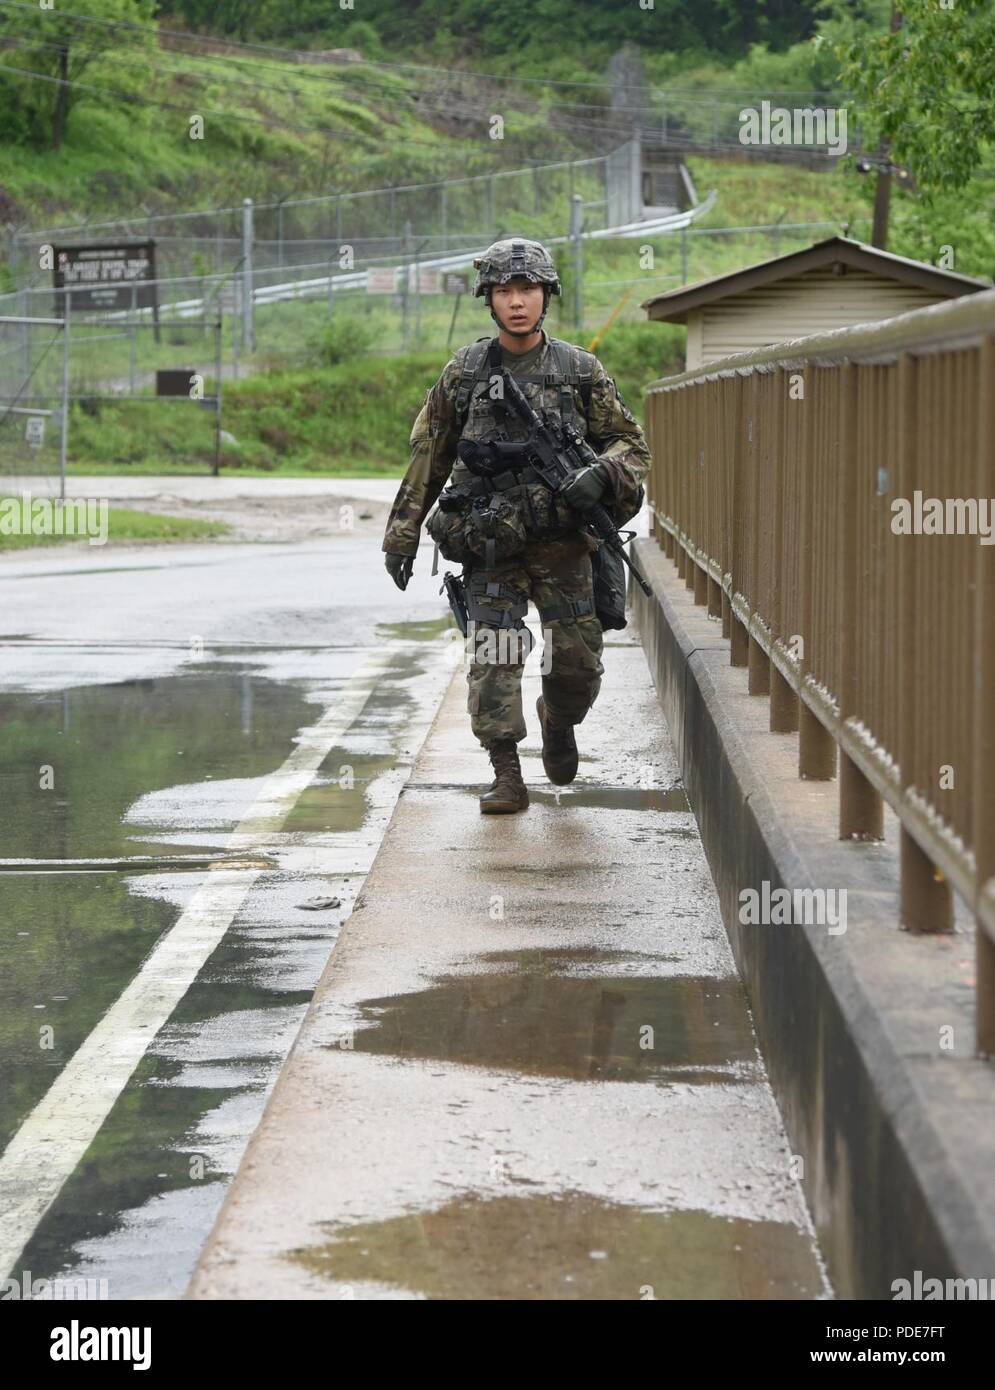 Cpl. Song, Tae Hoon, a native of Seoul, South Korea, assigned to 1st Armored Brigade Combat Team, 3rd Infantry Division, supporting the 2nd Infantry Division as part of the rotational forces, moves to his next point at the day stakes challenge during the Eighth Army 2018 Best Warrior Competition, held at Camp Casey, Republic of Korea, May 17. The Eighth Army BWC is being held to recognize and select the most qualified junior enlisted and non-commissioned officer to represent Eighth Army at the U.S. Army Pacific Best Warrior Competition at Schofield Barracks, HI, in June. The competition will a Stock Photo